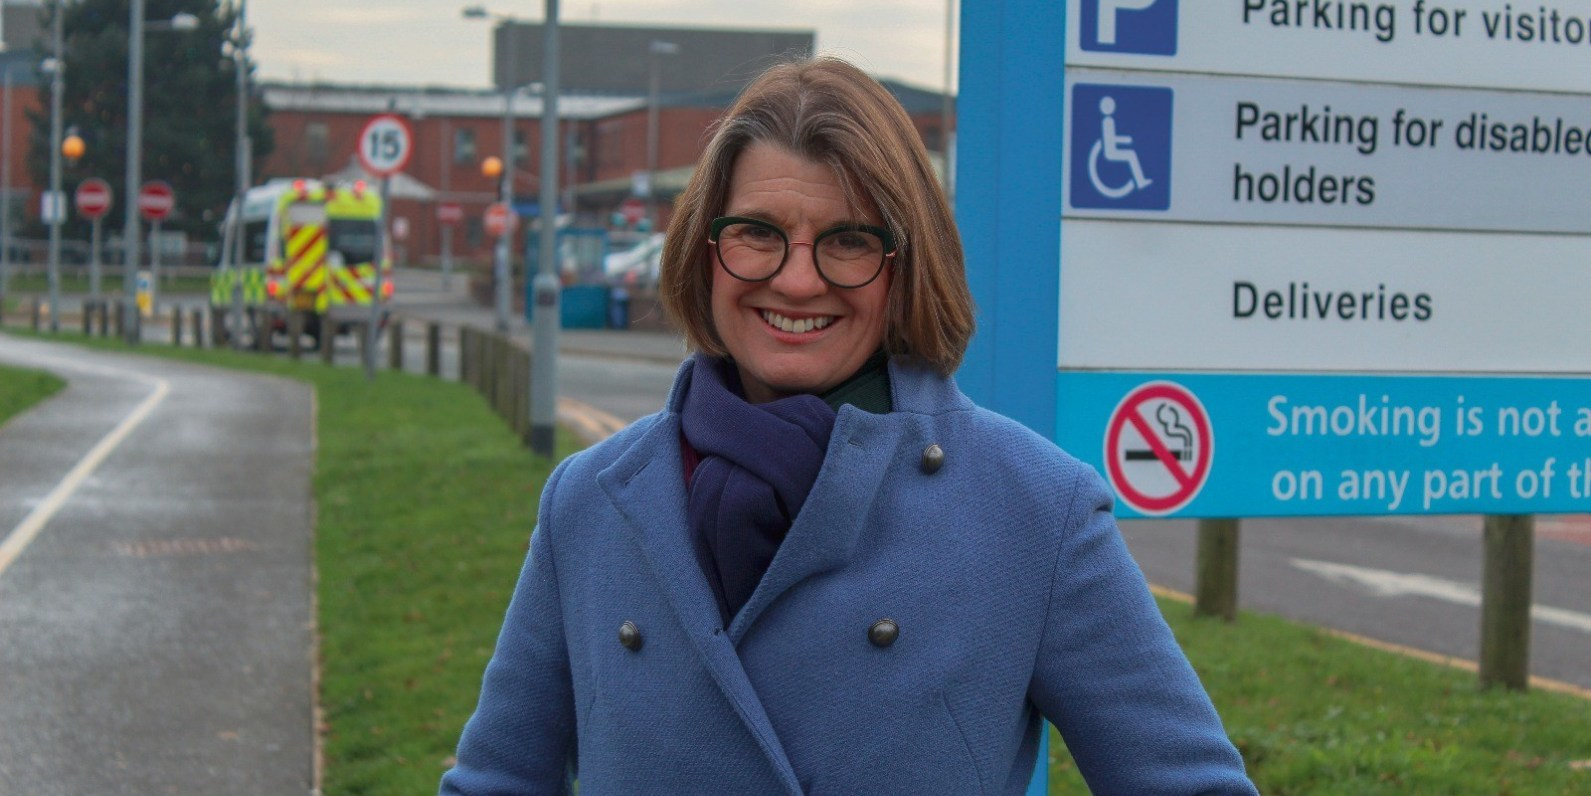 Redditch MP Rachel Maclean